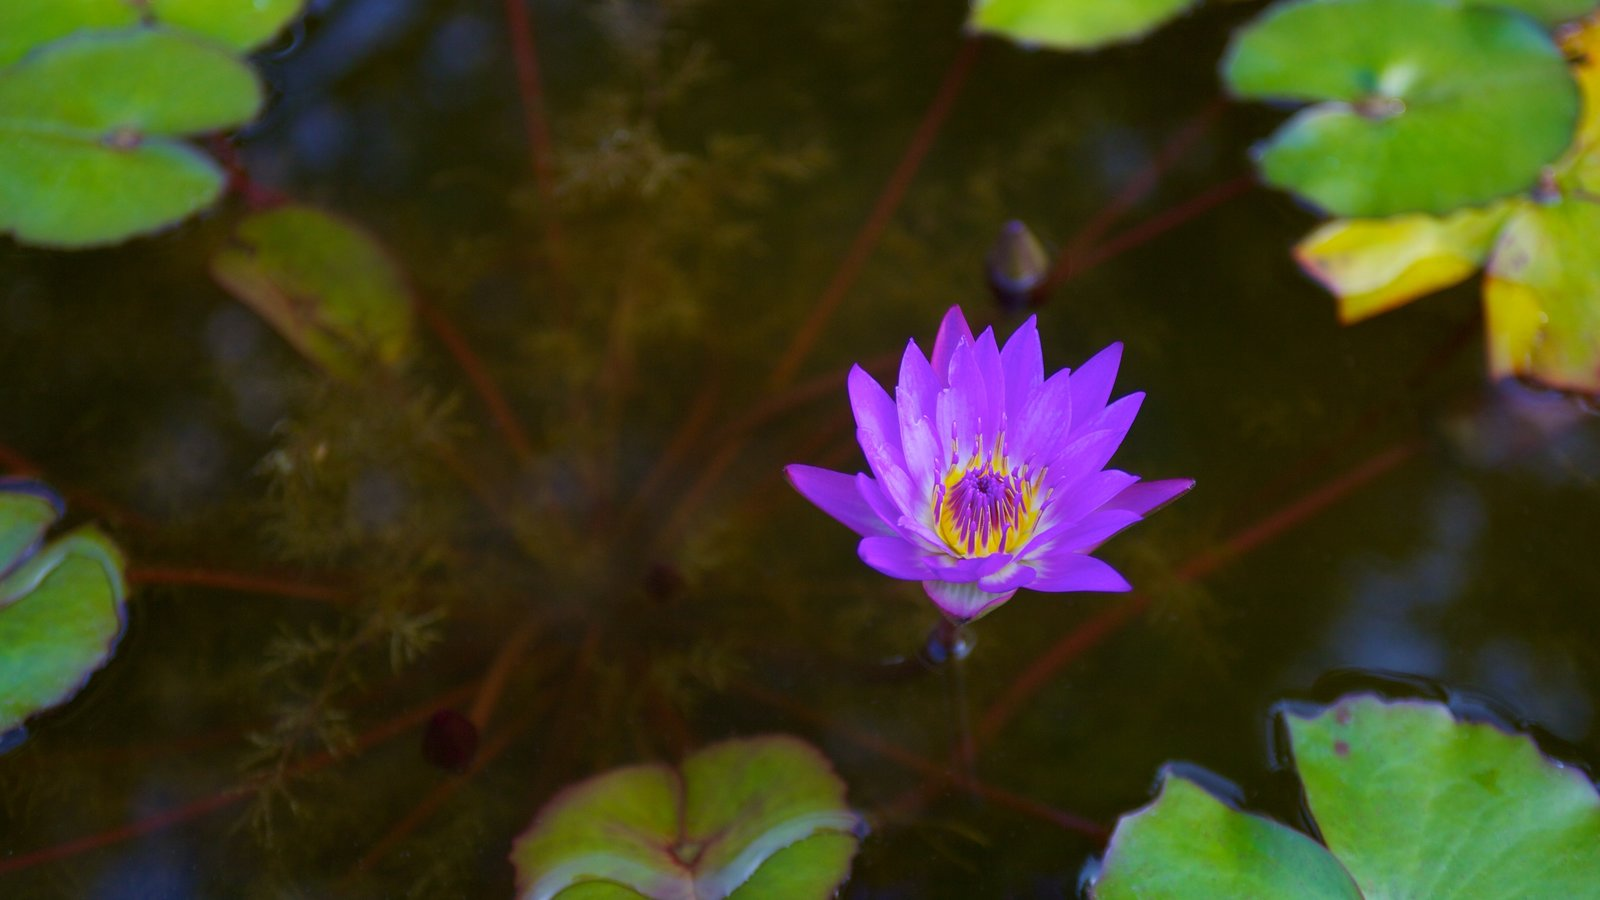 Flowers Pictures: View Images of Zilker Botanical Garden